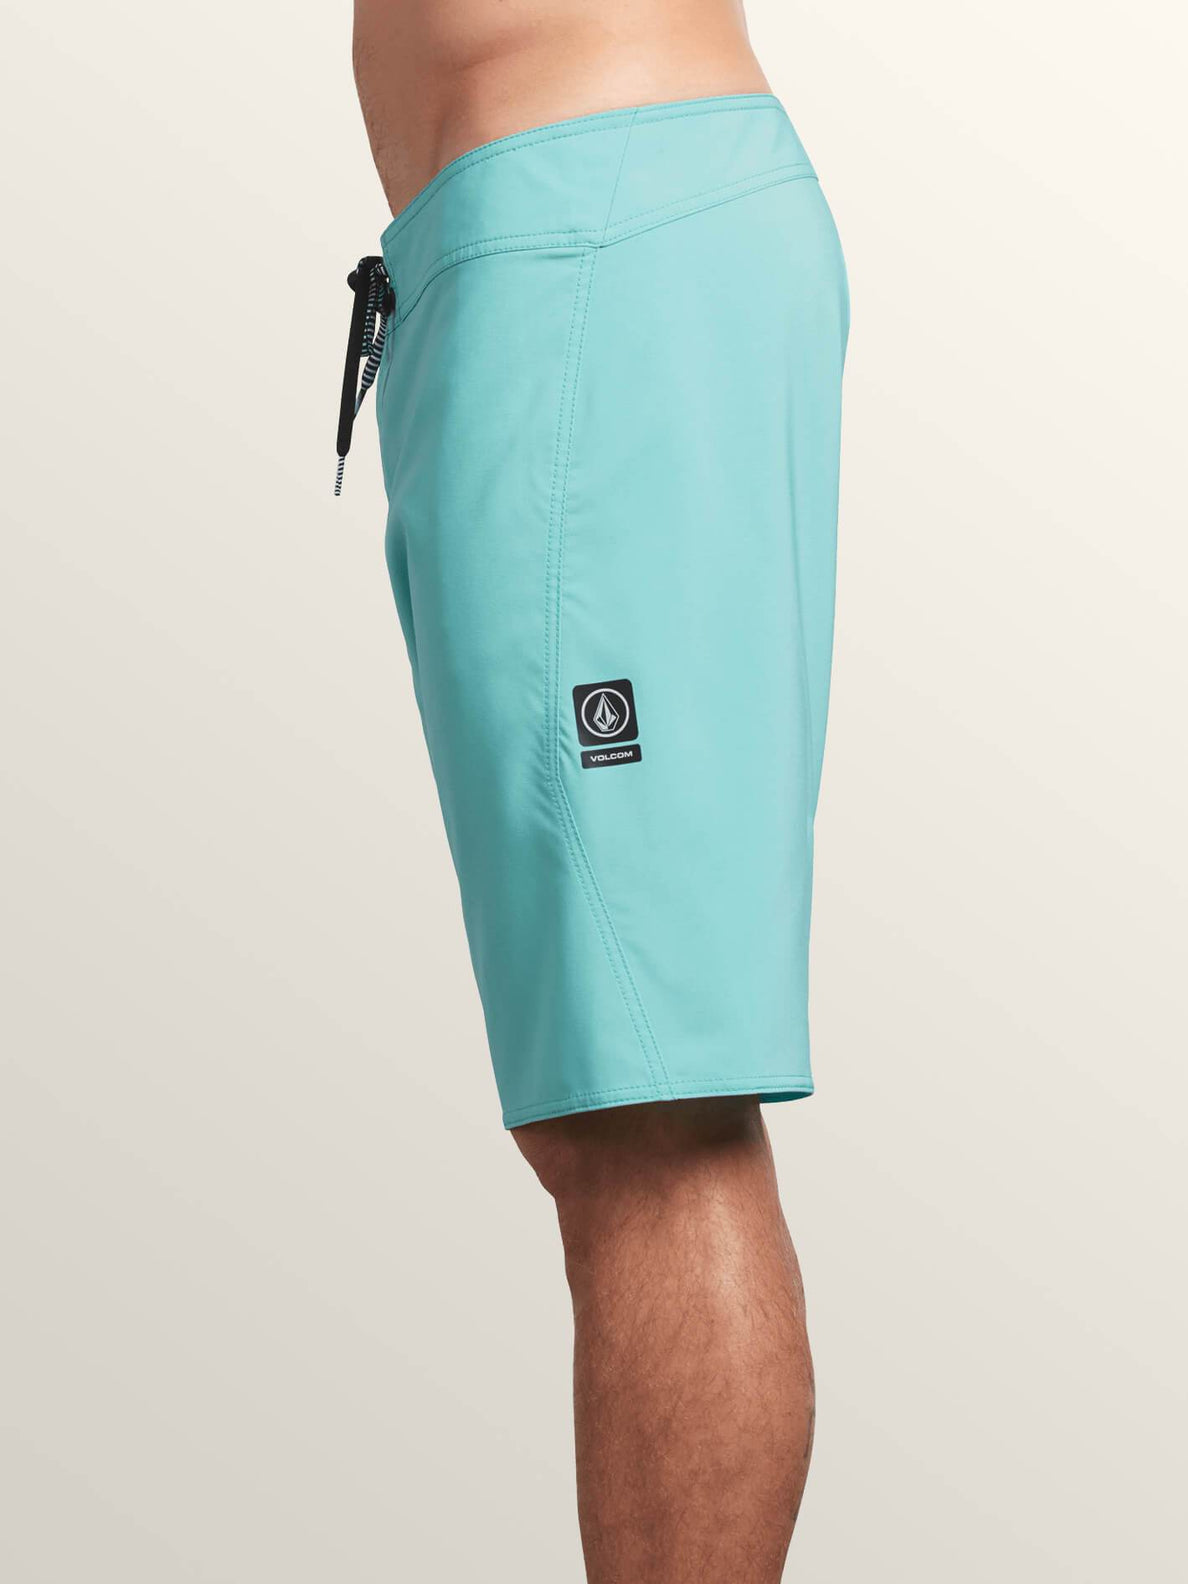 Lido Solid Mod Boardshorts In Bright Turquoise, Alternate View